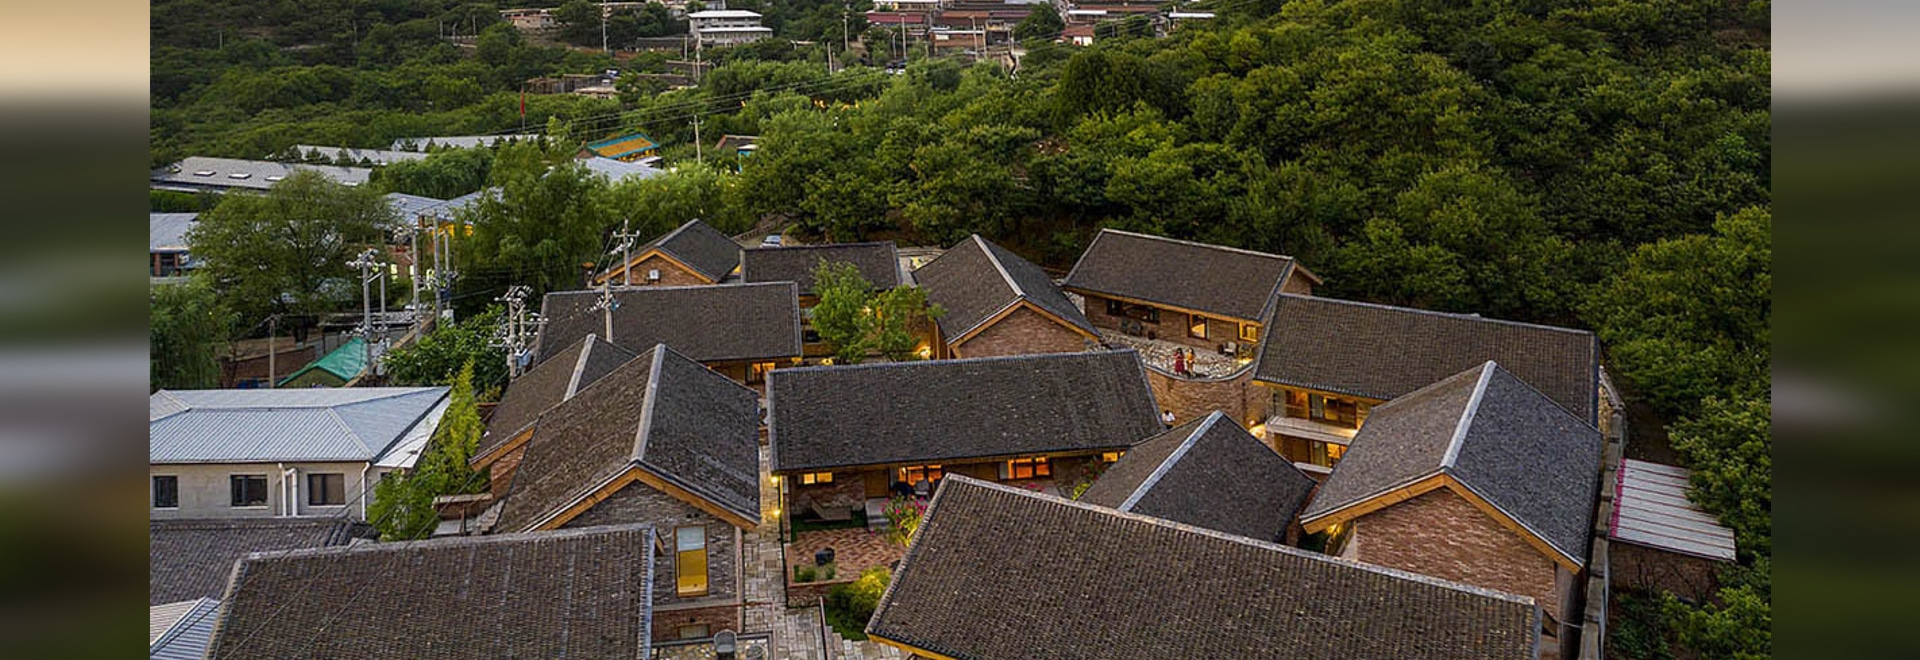 LlLab Creates A Rural Oasis With San Sa Village In Beijing